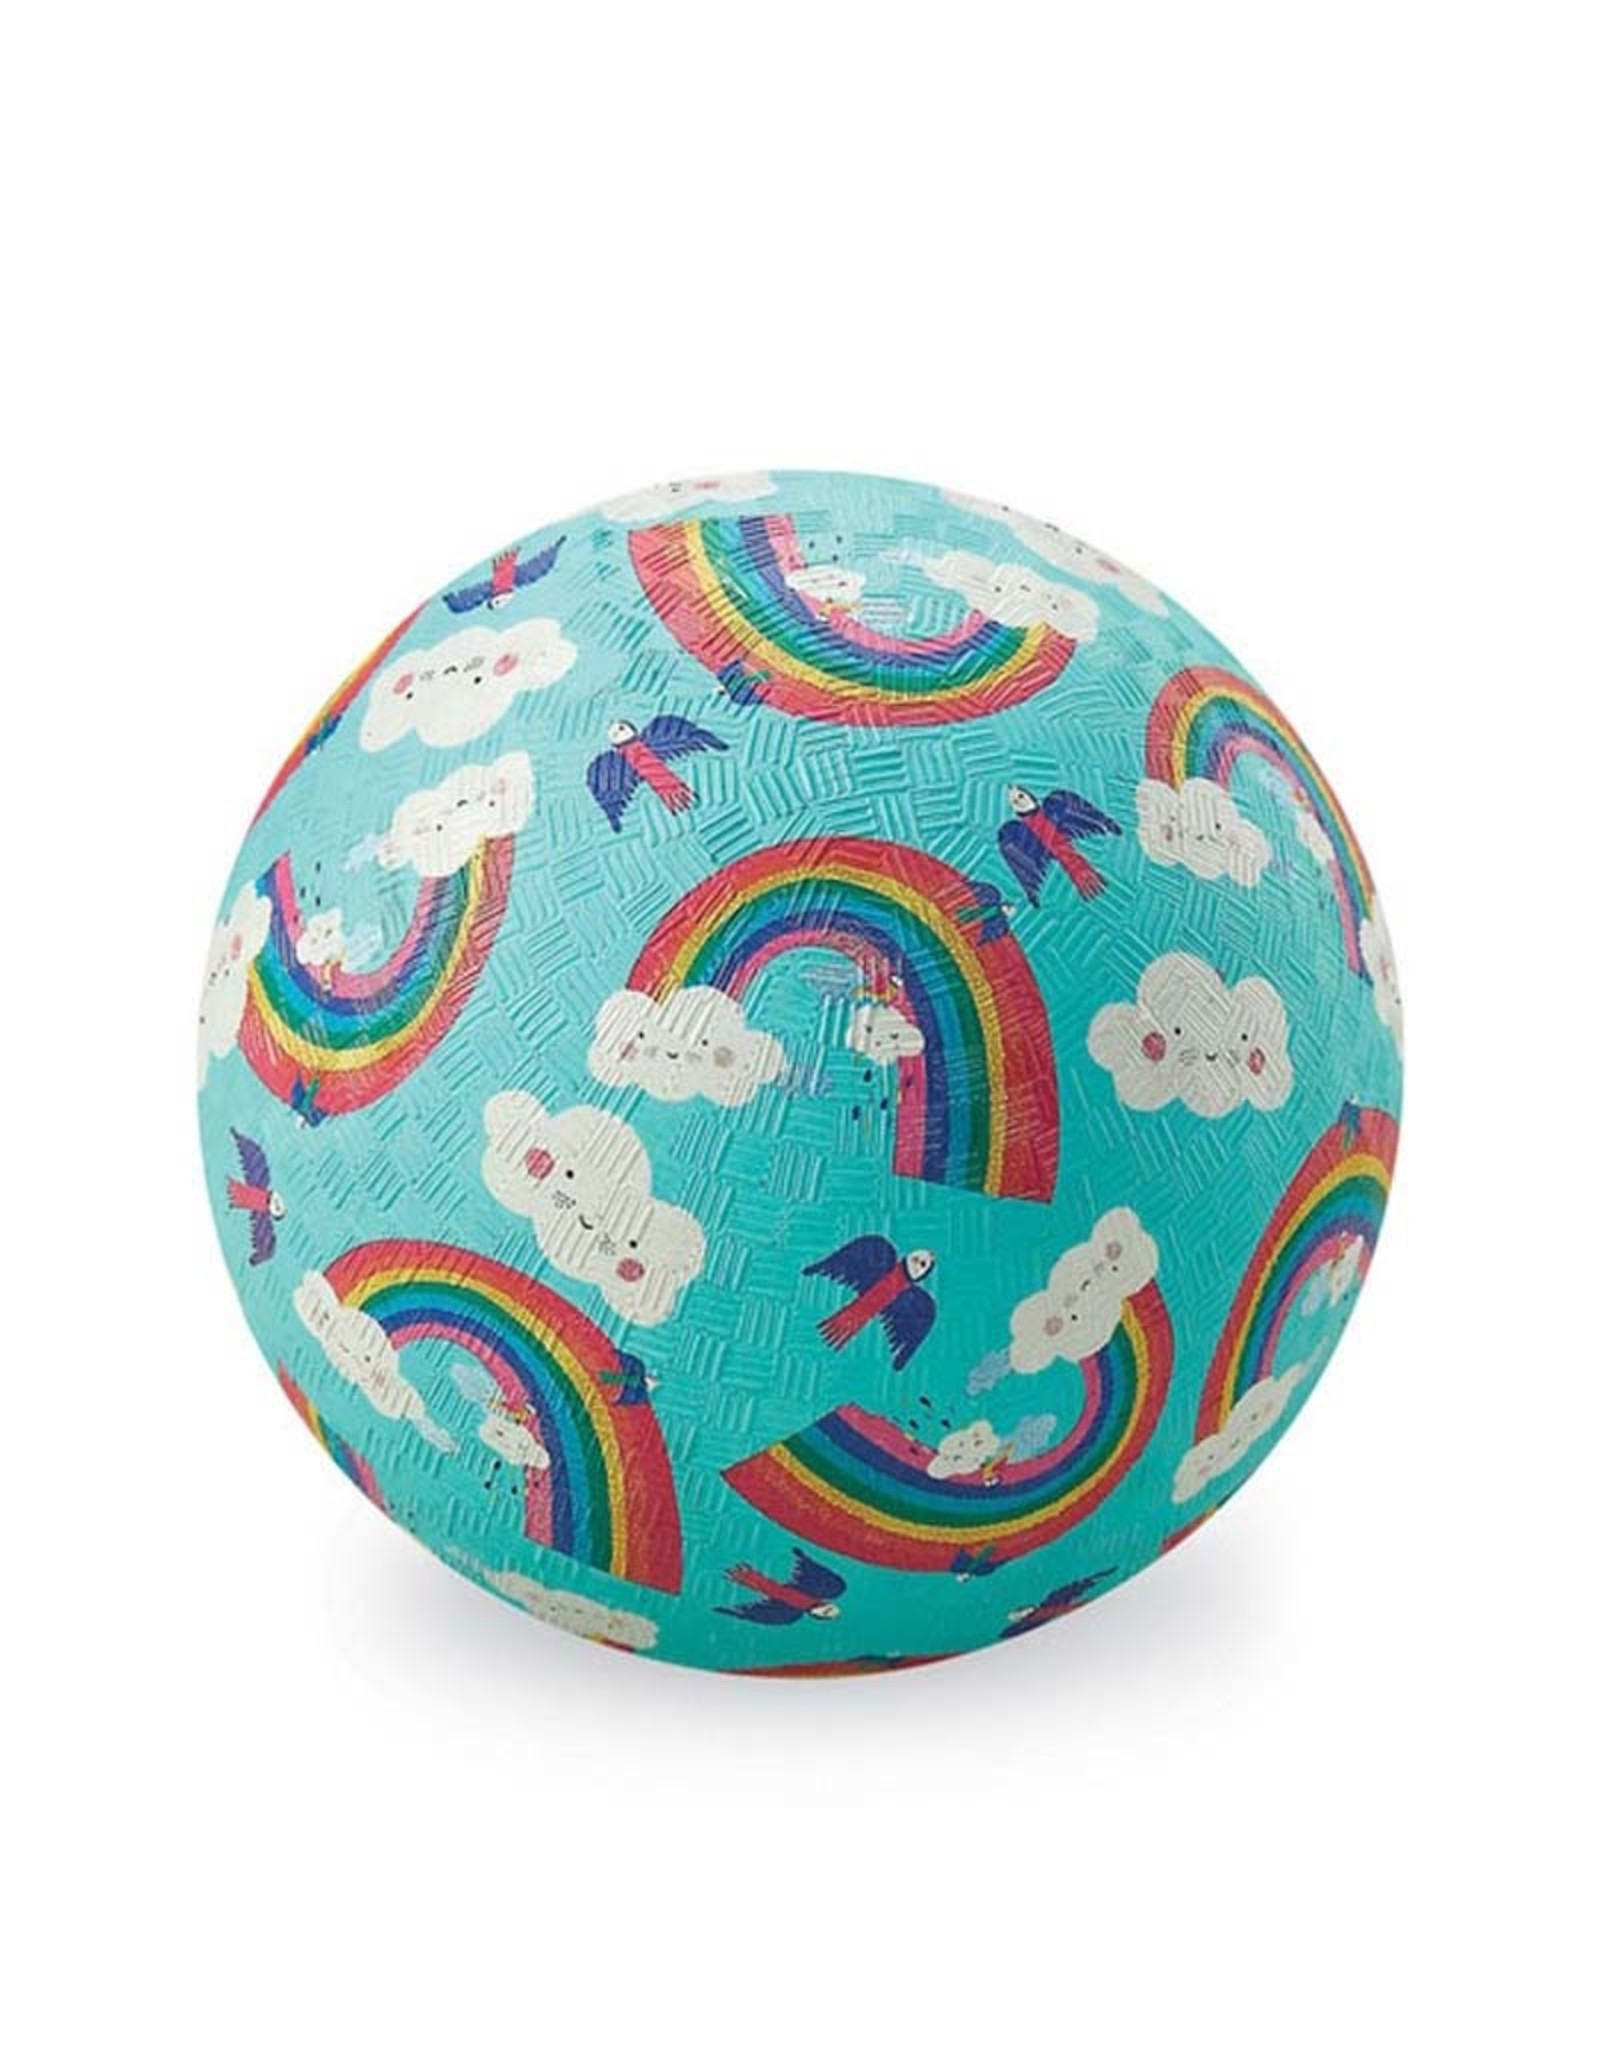 "Crocodile Creek 5"" Playground Ball Rainbow Dreams"